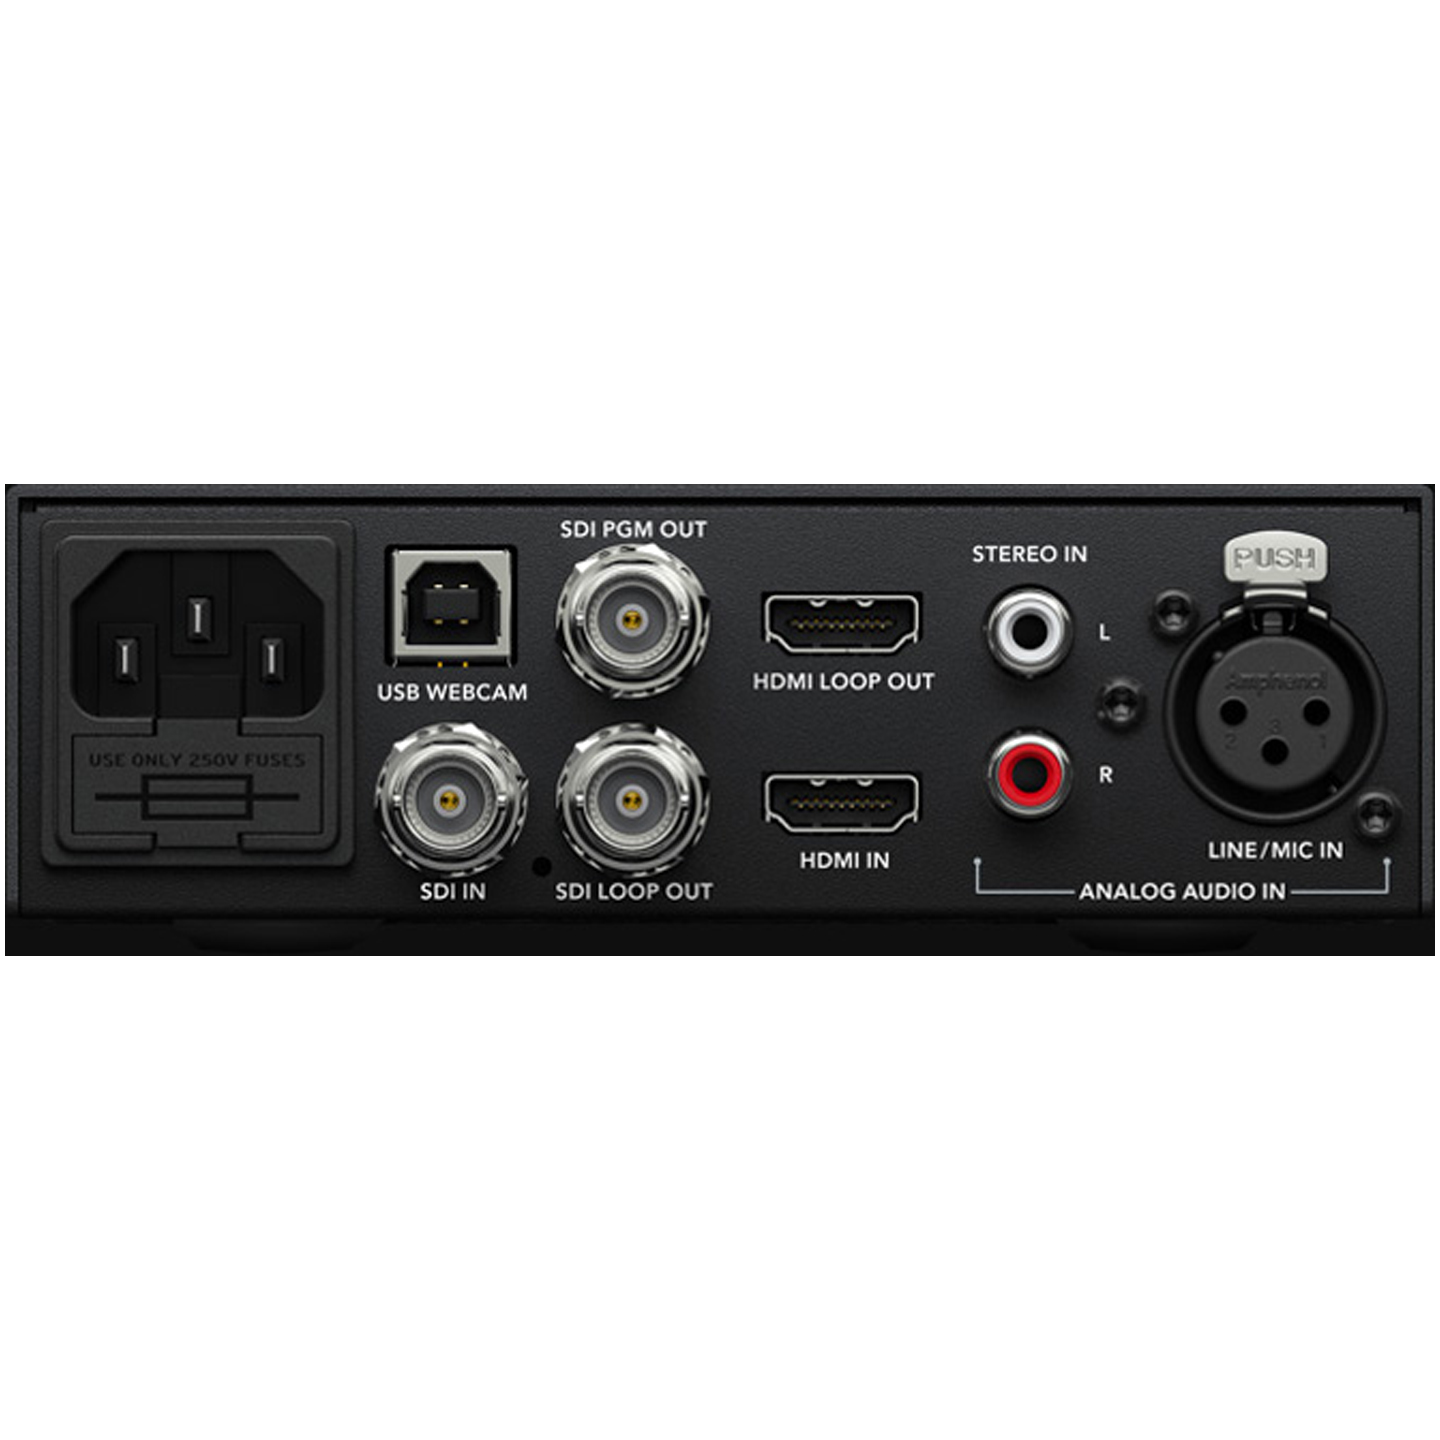 Blackmagic Design Web Presenter - Rear